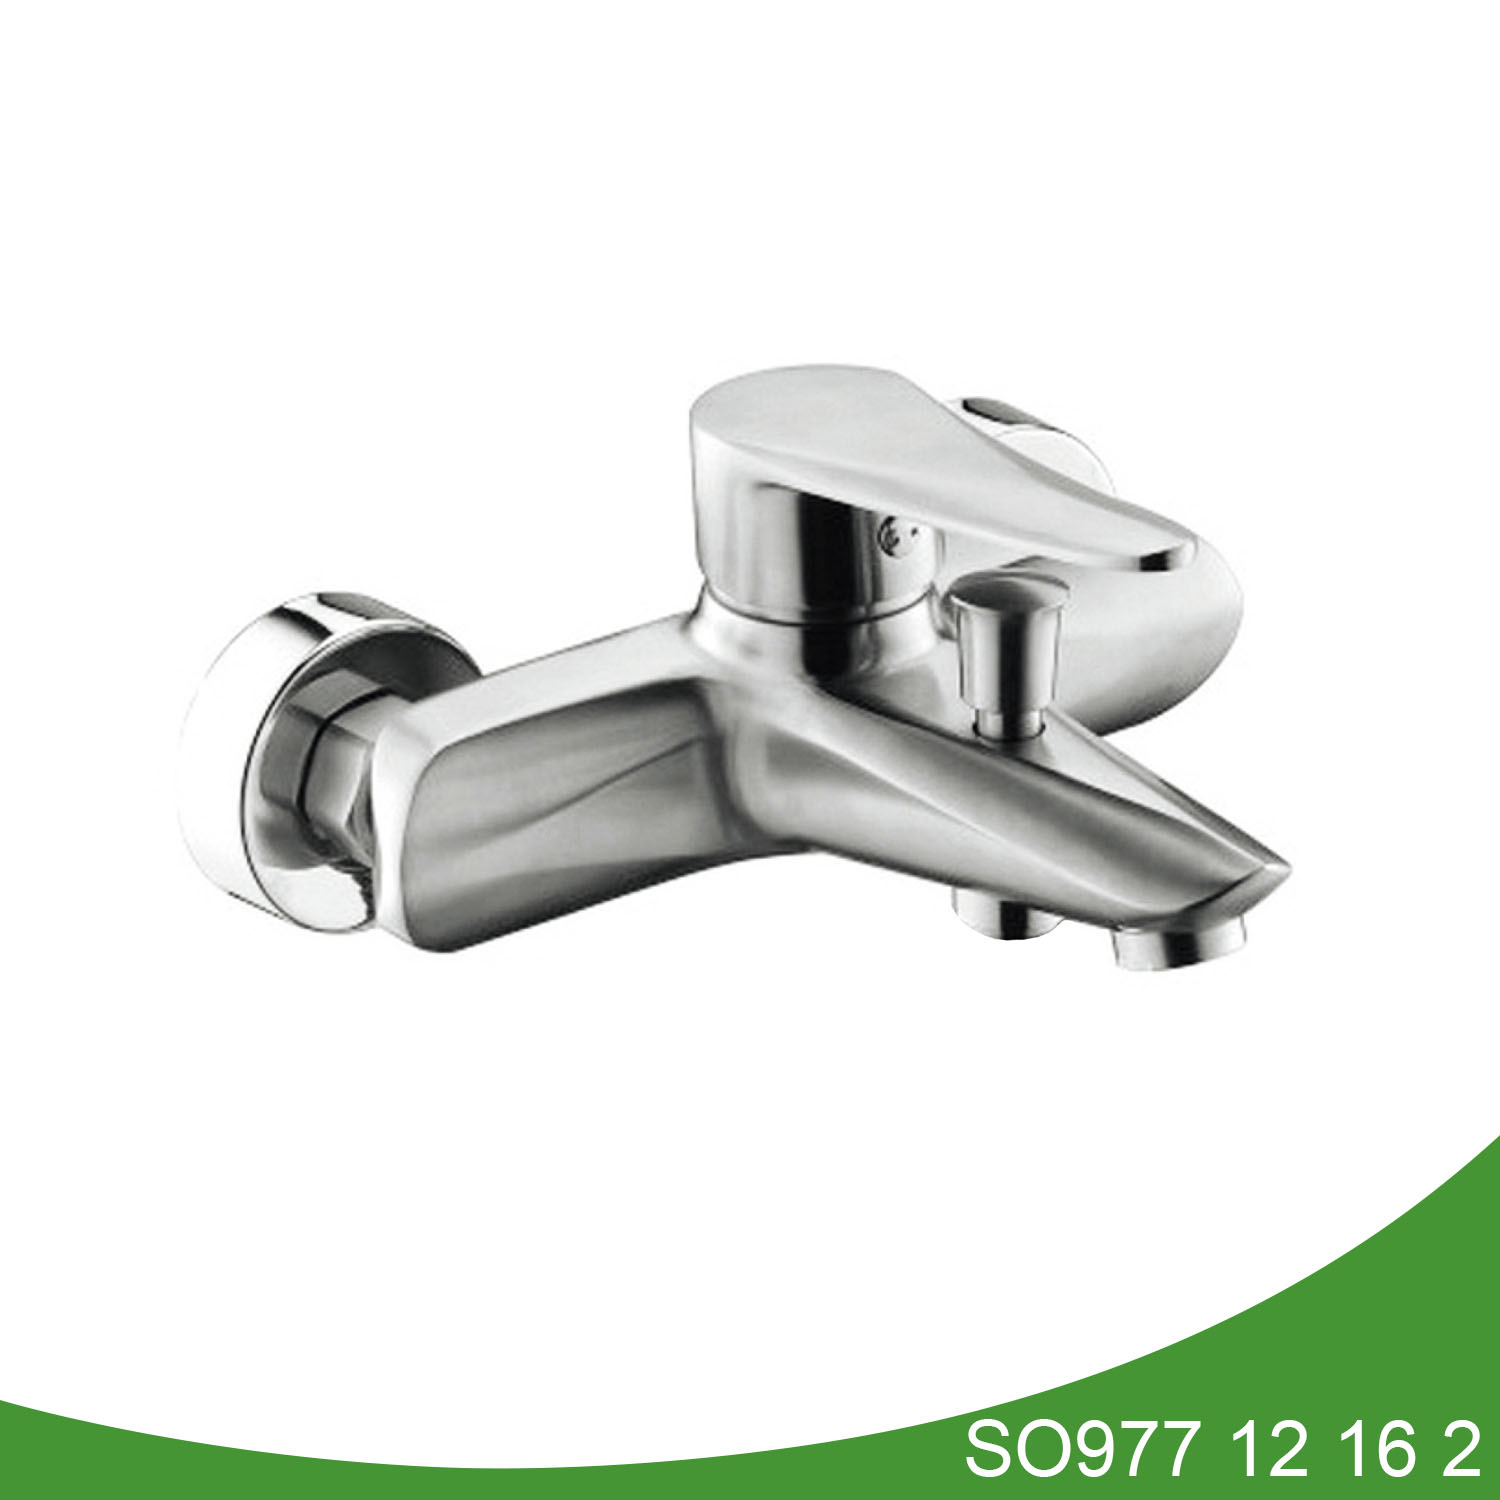 Stainless steel shower mixer SO977 12 16 2